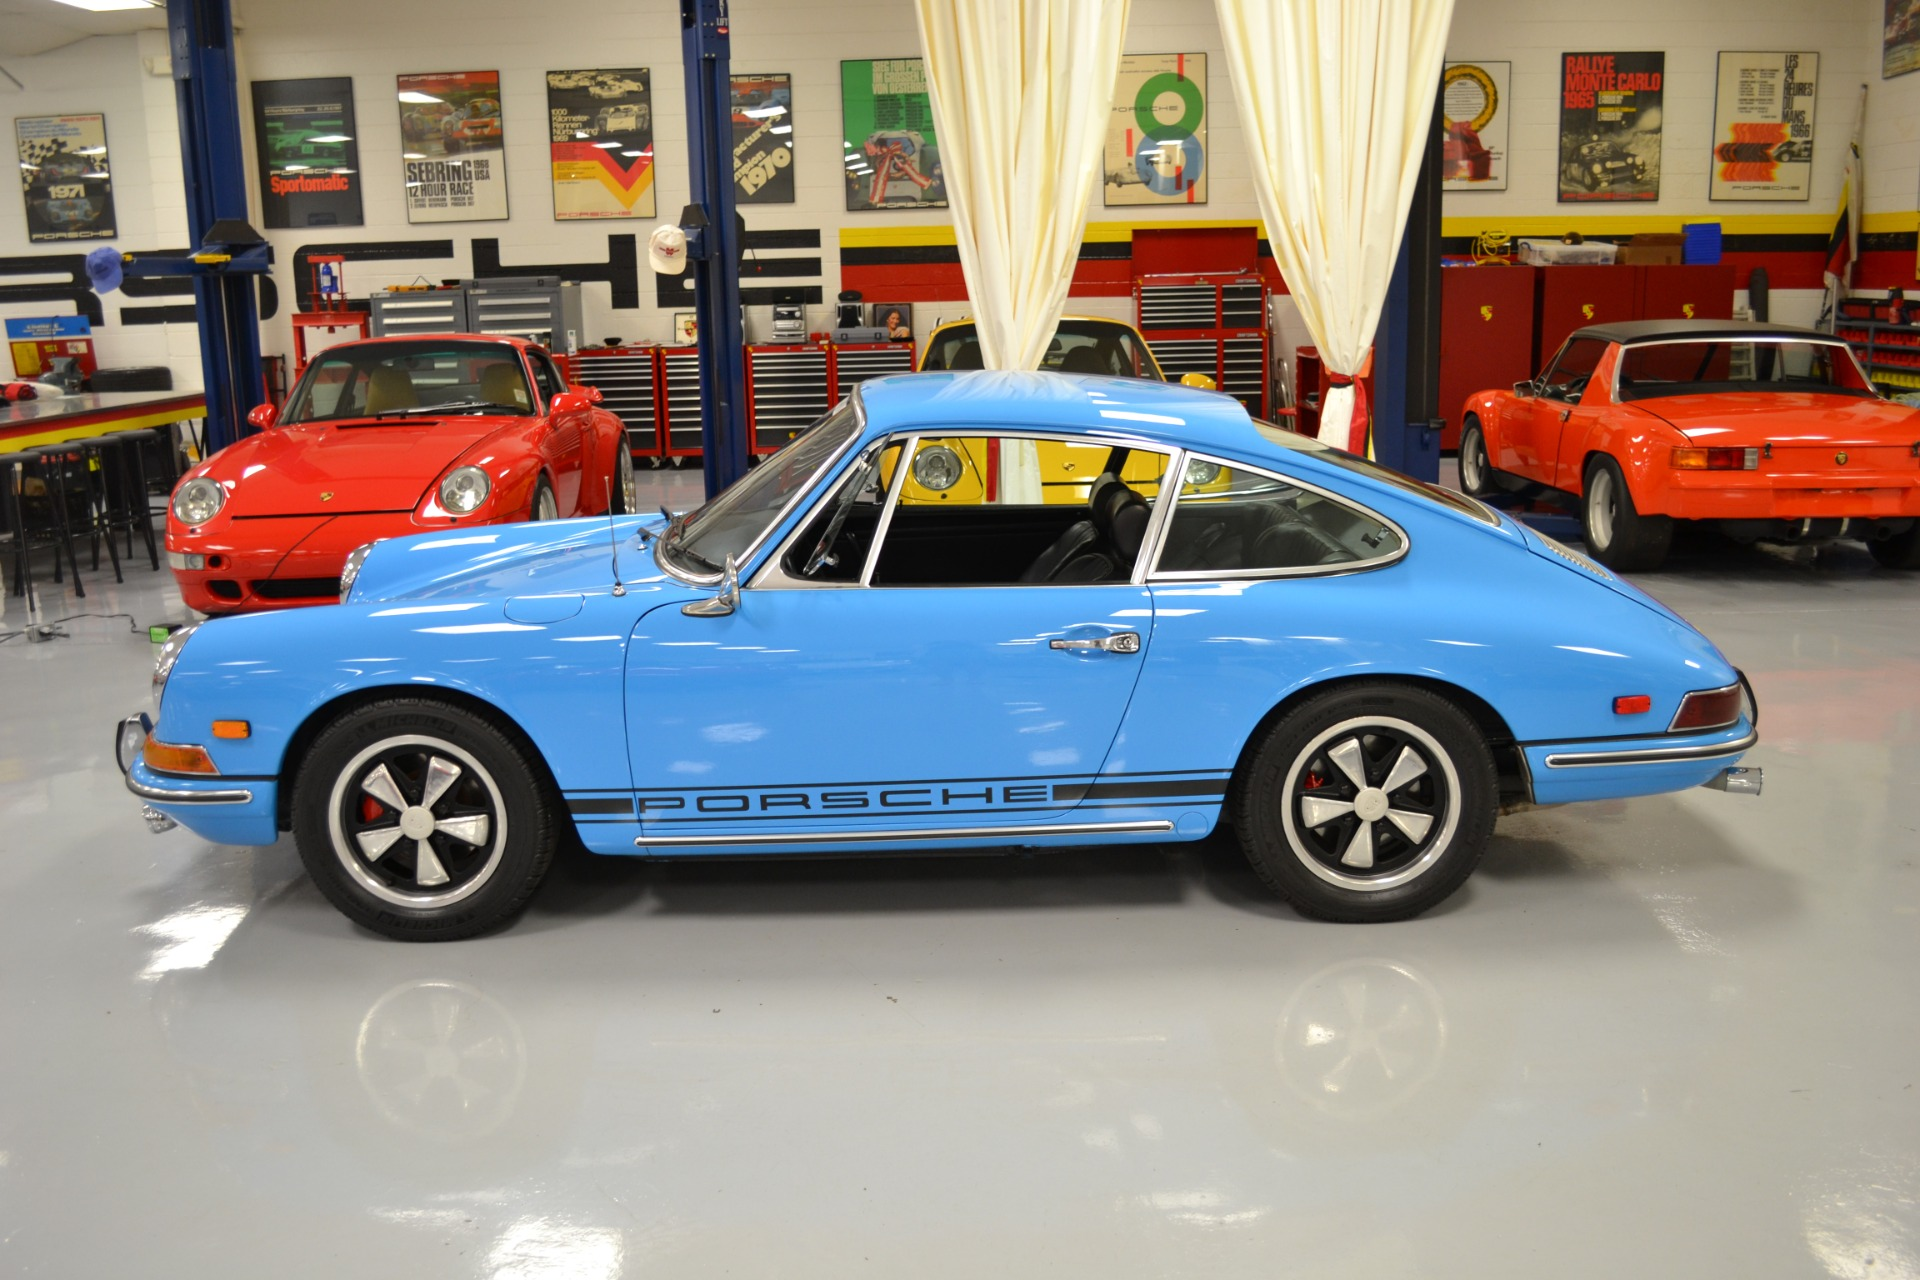 1968 Porsche 911 For Sale in Pinellas Park, FL 1107 | Tampa Bay ...